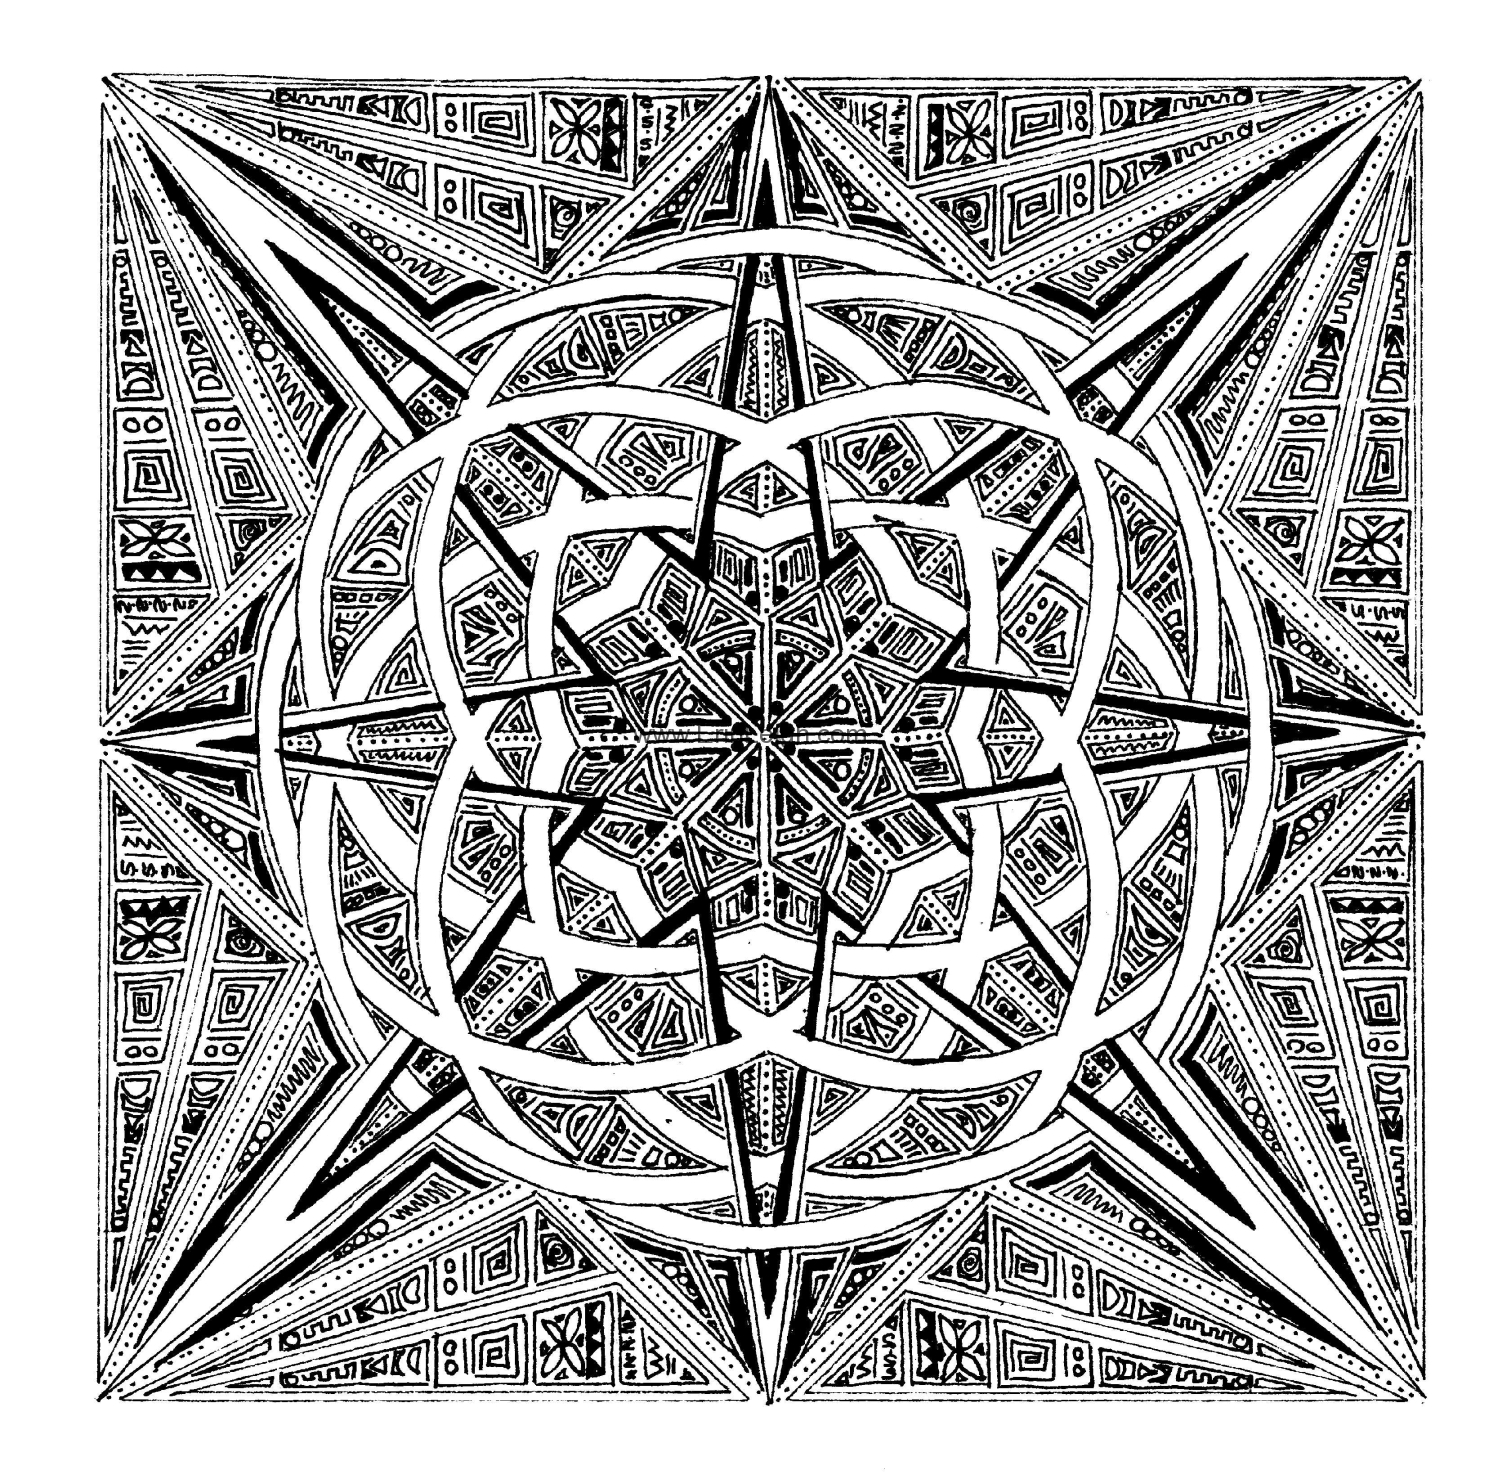 Geometry 1 by Erin Leigh